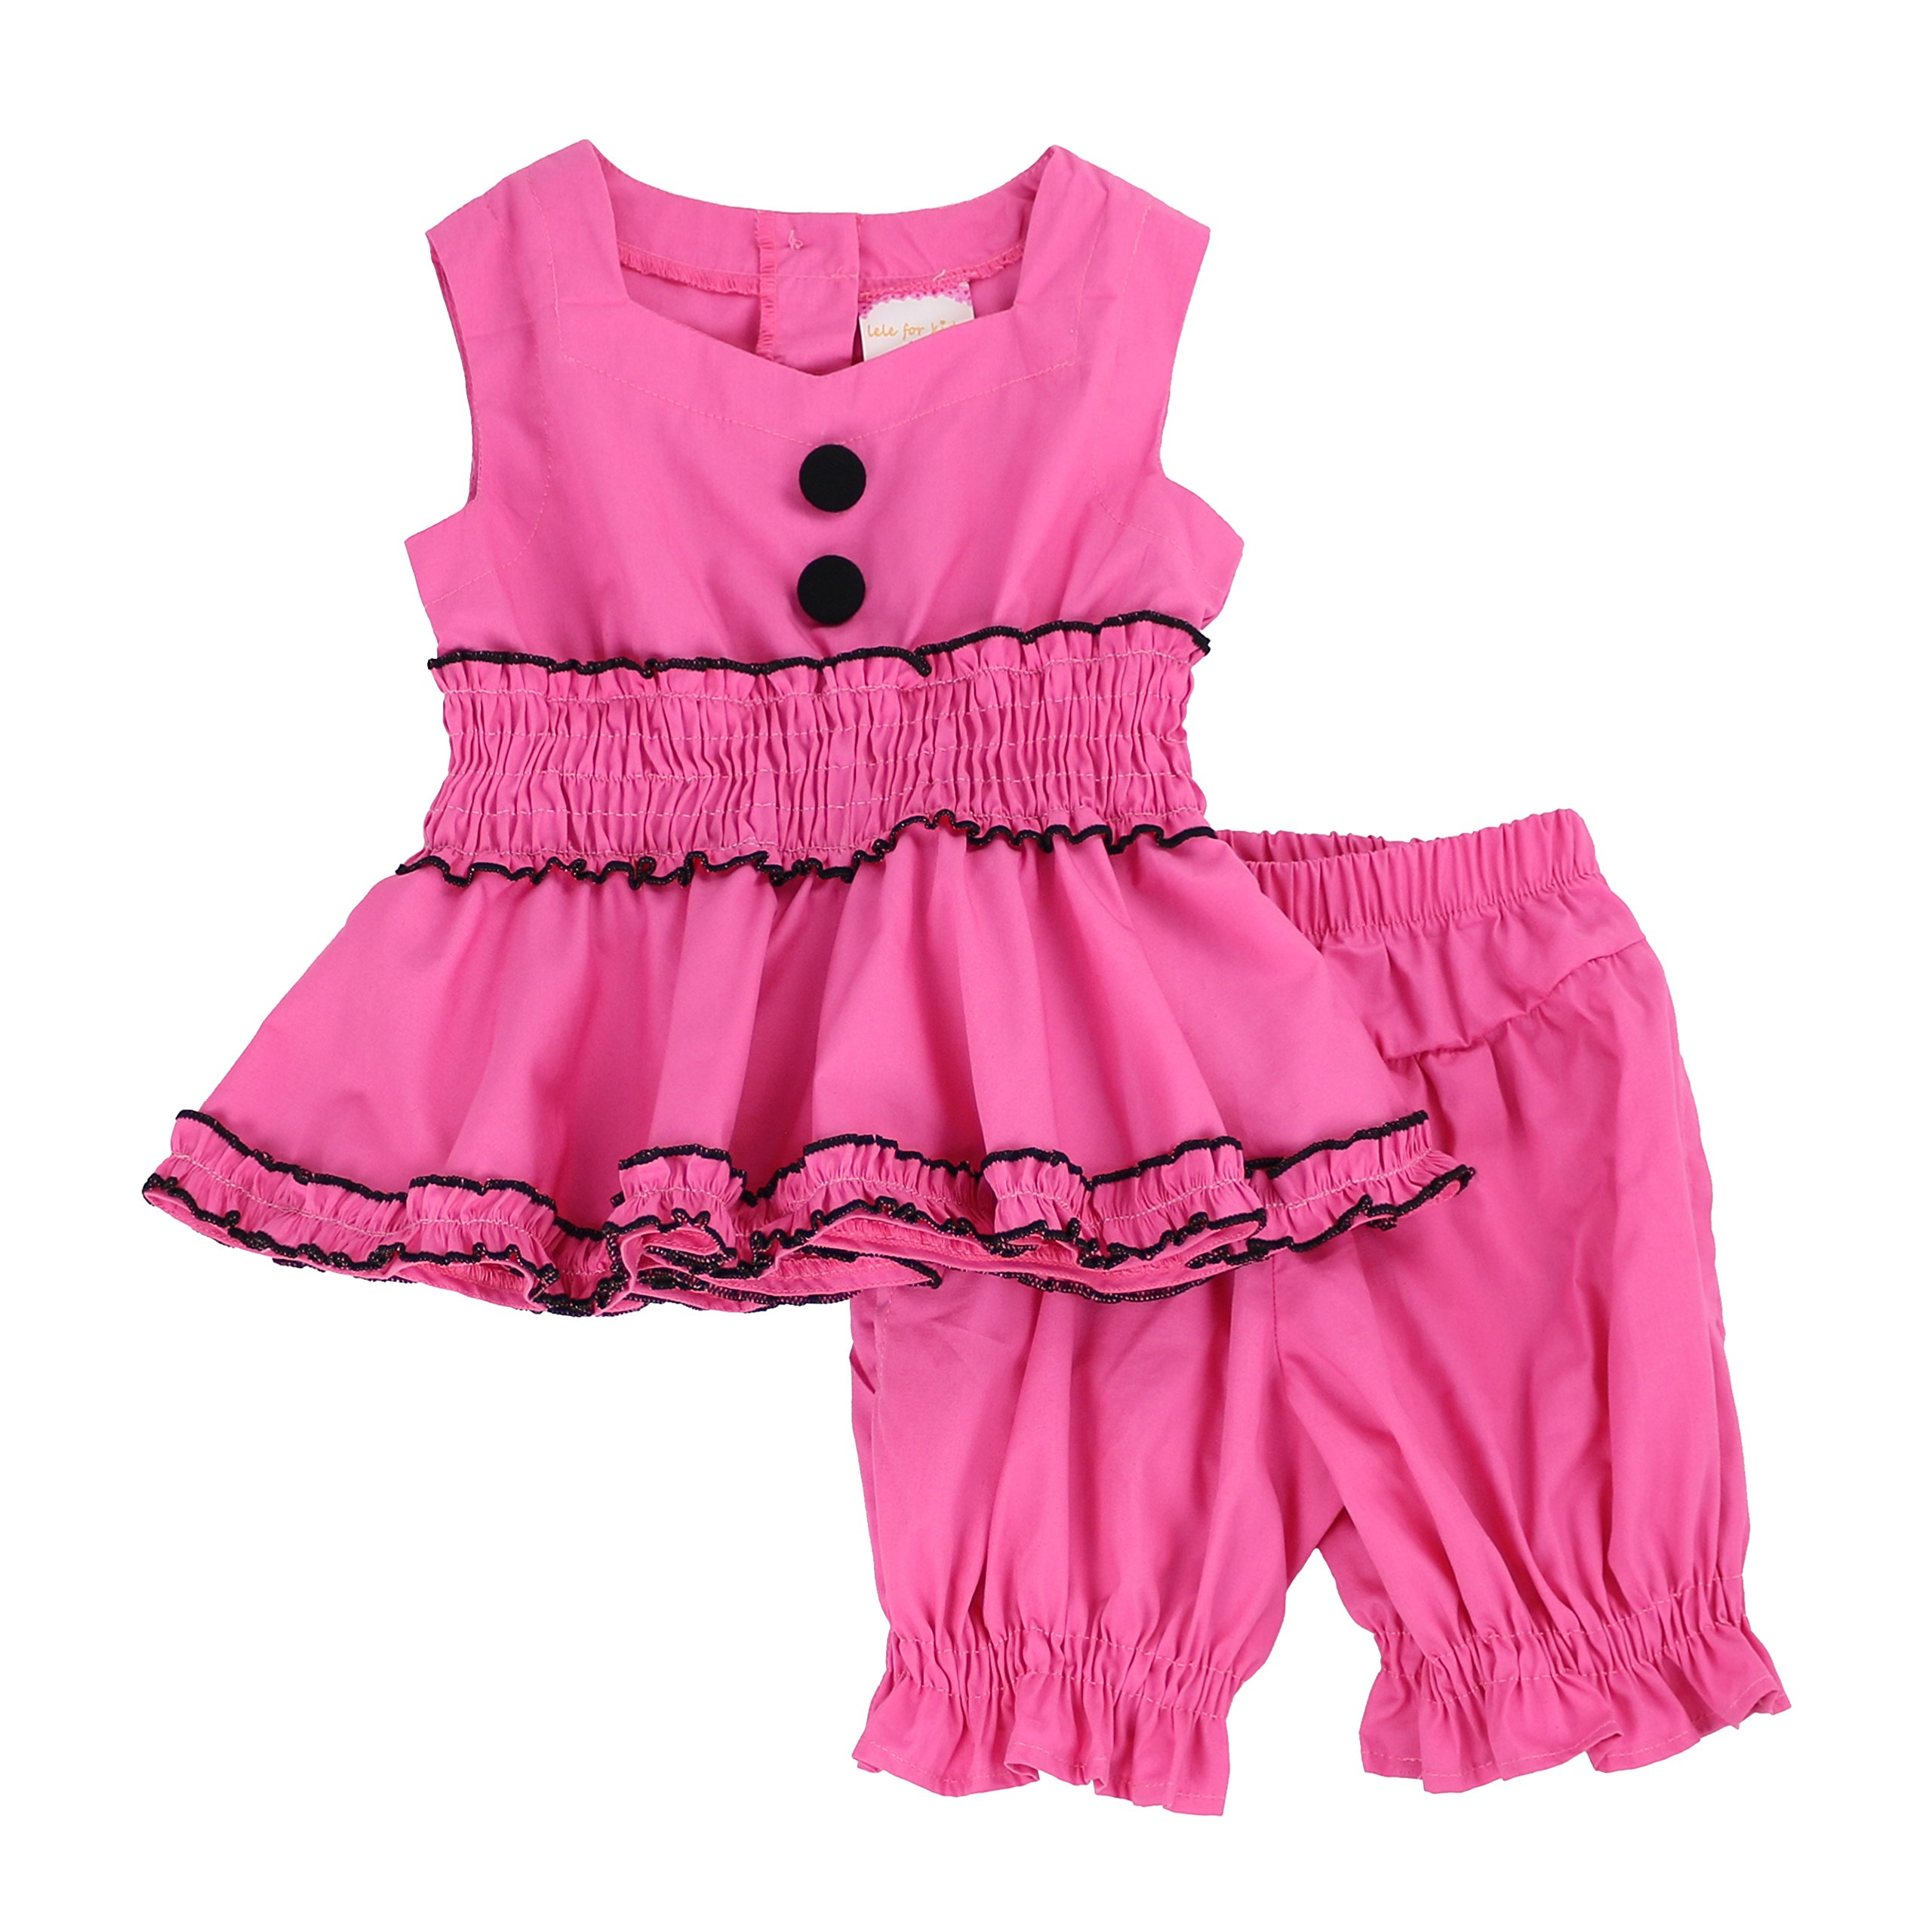 LELEFORKIDS - Toddlers and Girls Ozzy Babe Ruffled Bloomer Short Set in Hot Pink 5